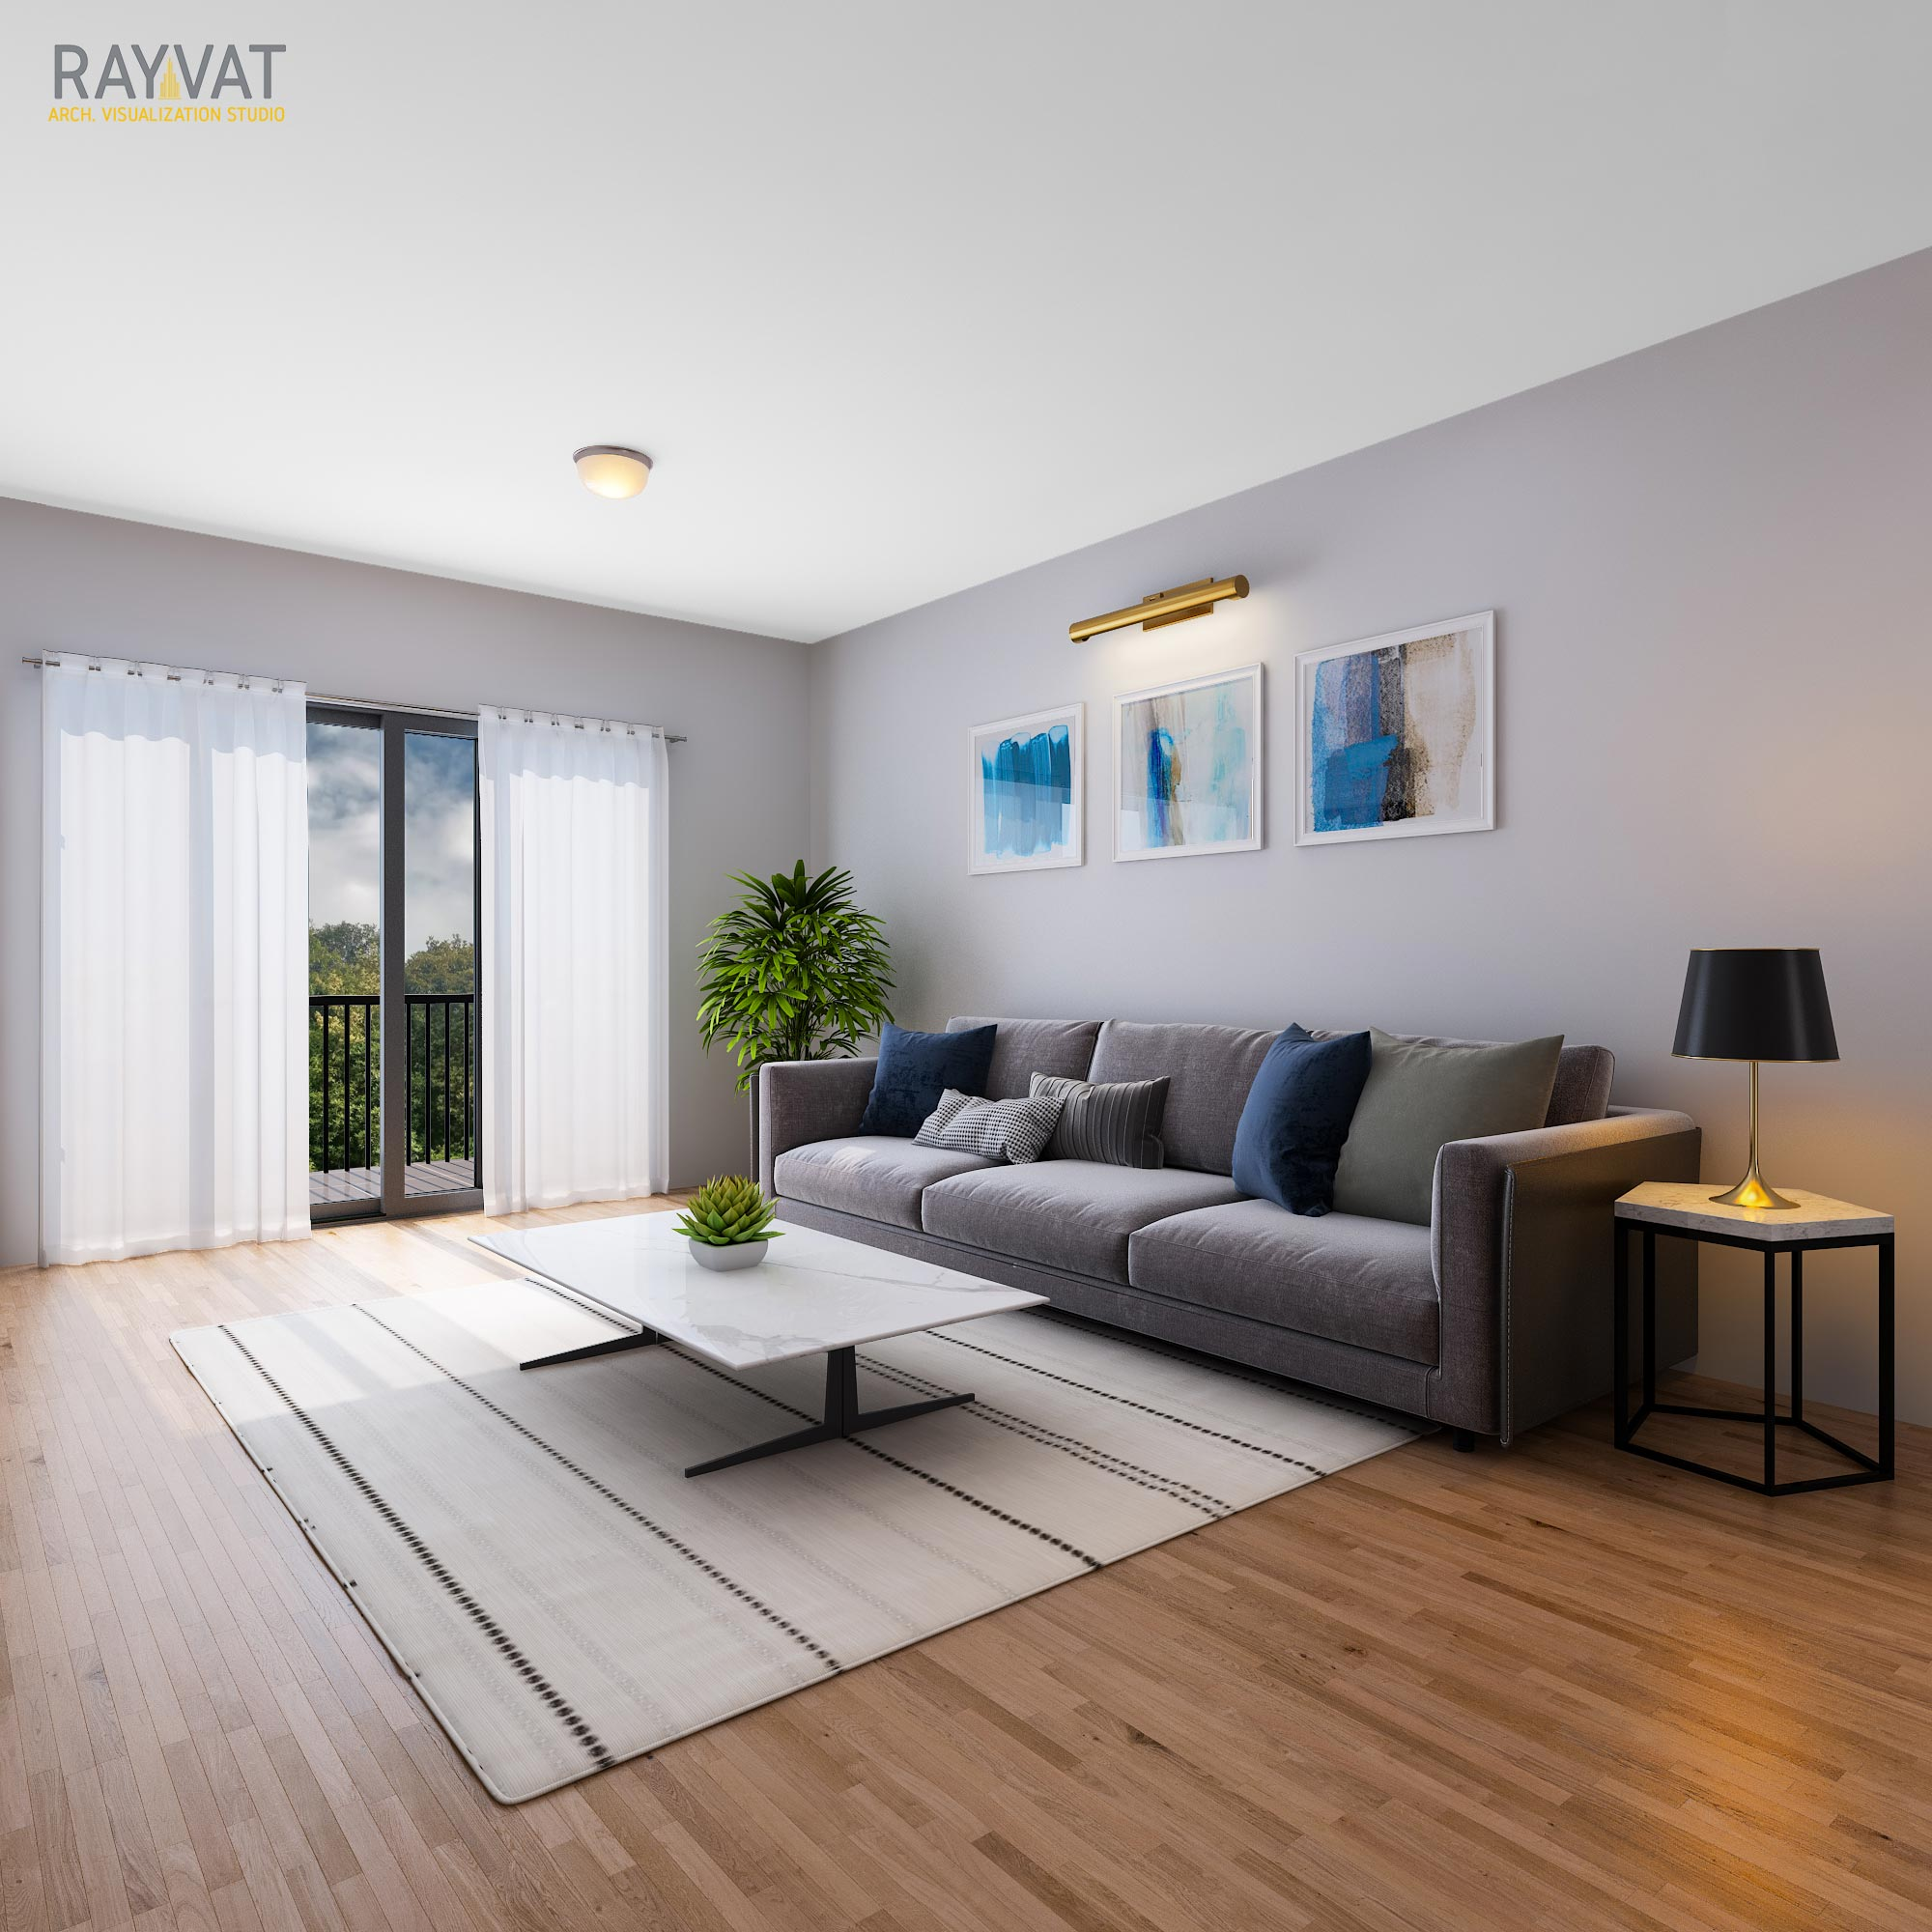 Living Room CGI Clearly Depicts the Room Layout